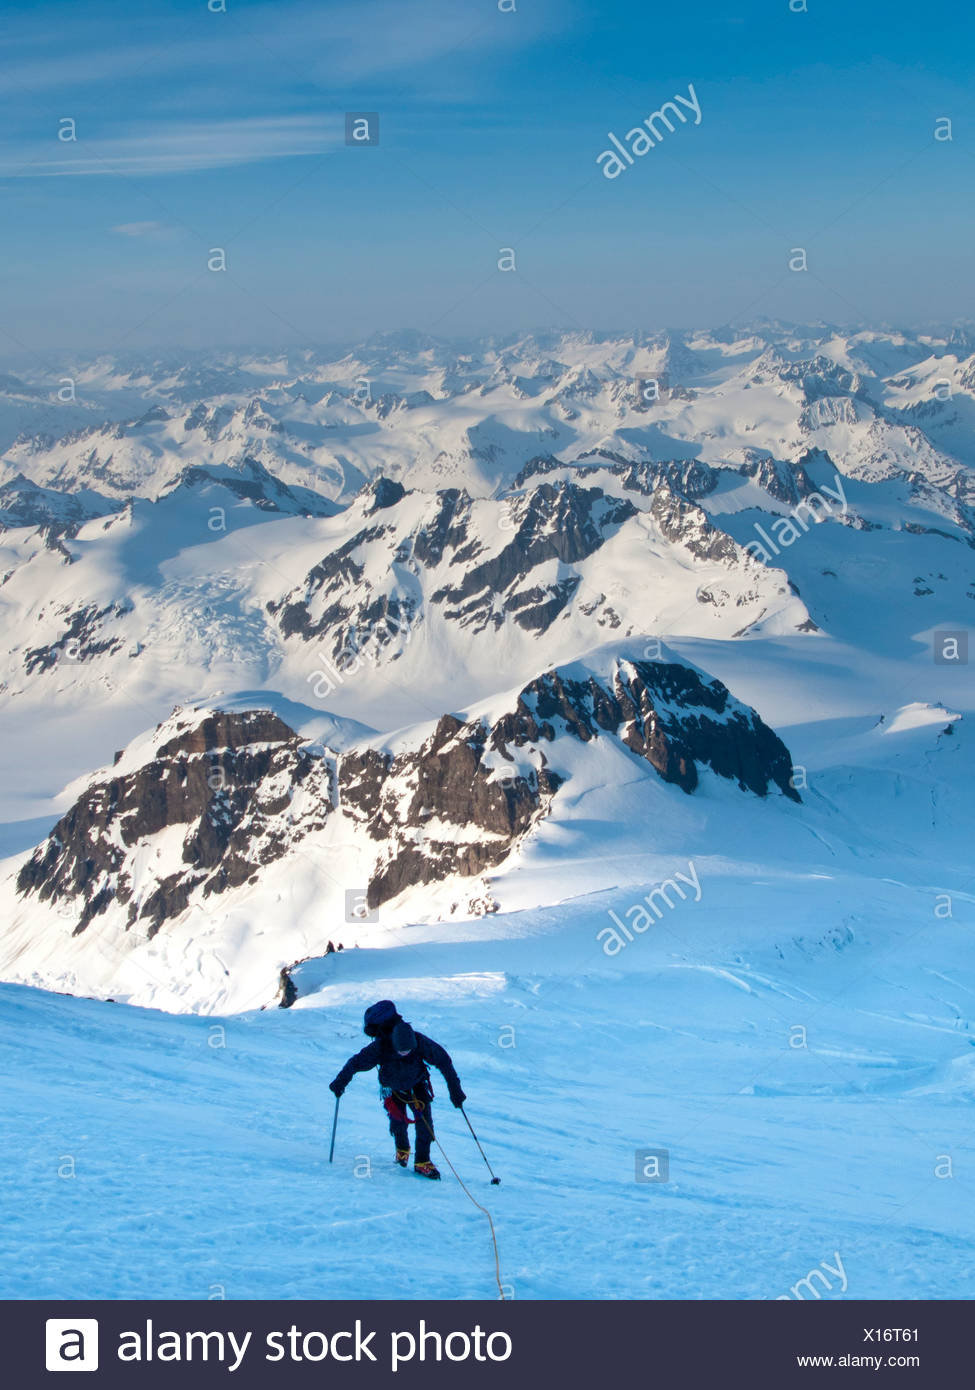 Climber leaning into high winds on northwest ridge of Mount Iliamna above Tongue Glacier and Chigmit Mountains, Spring, Alaska - Stock Image